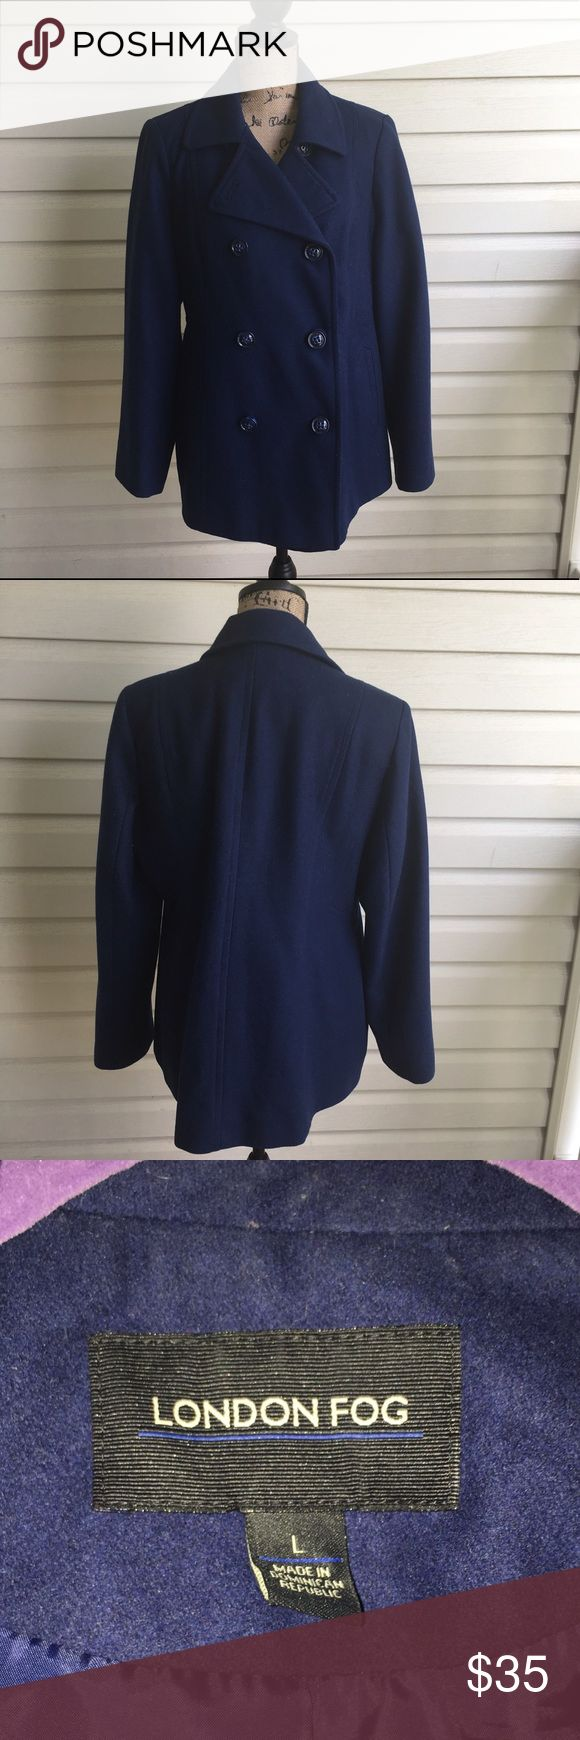 London Fog Navy Pea Coat Beautiful navy color Pea Coat. In excellent condition from London Fog. Size Large. I'm a speedy shipper and we have a smoke free home! Measurements upon request. I'm always open to reasonable offers. London Fog Jackets & Coats Pea Coats